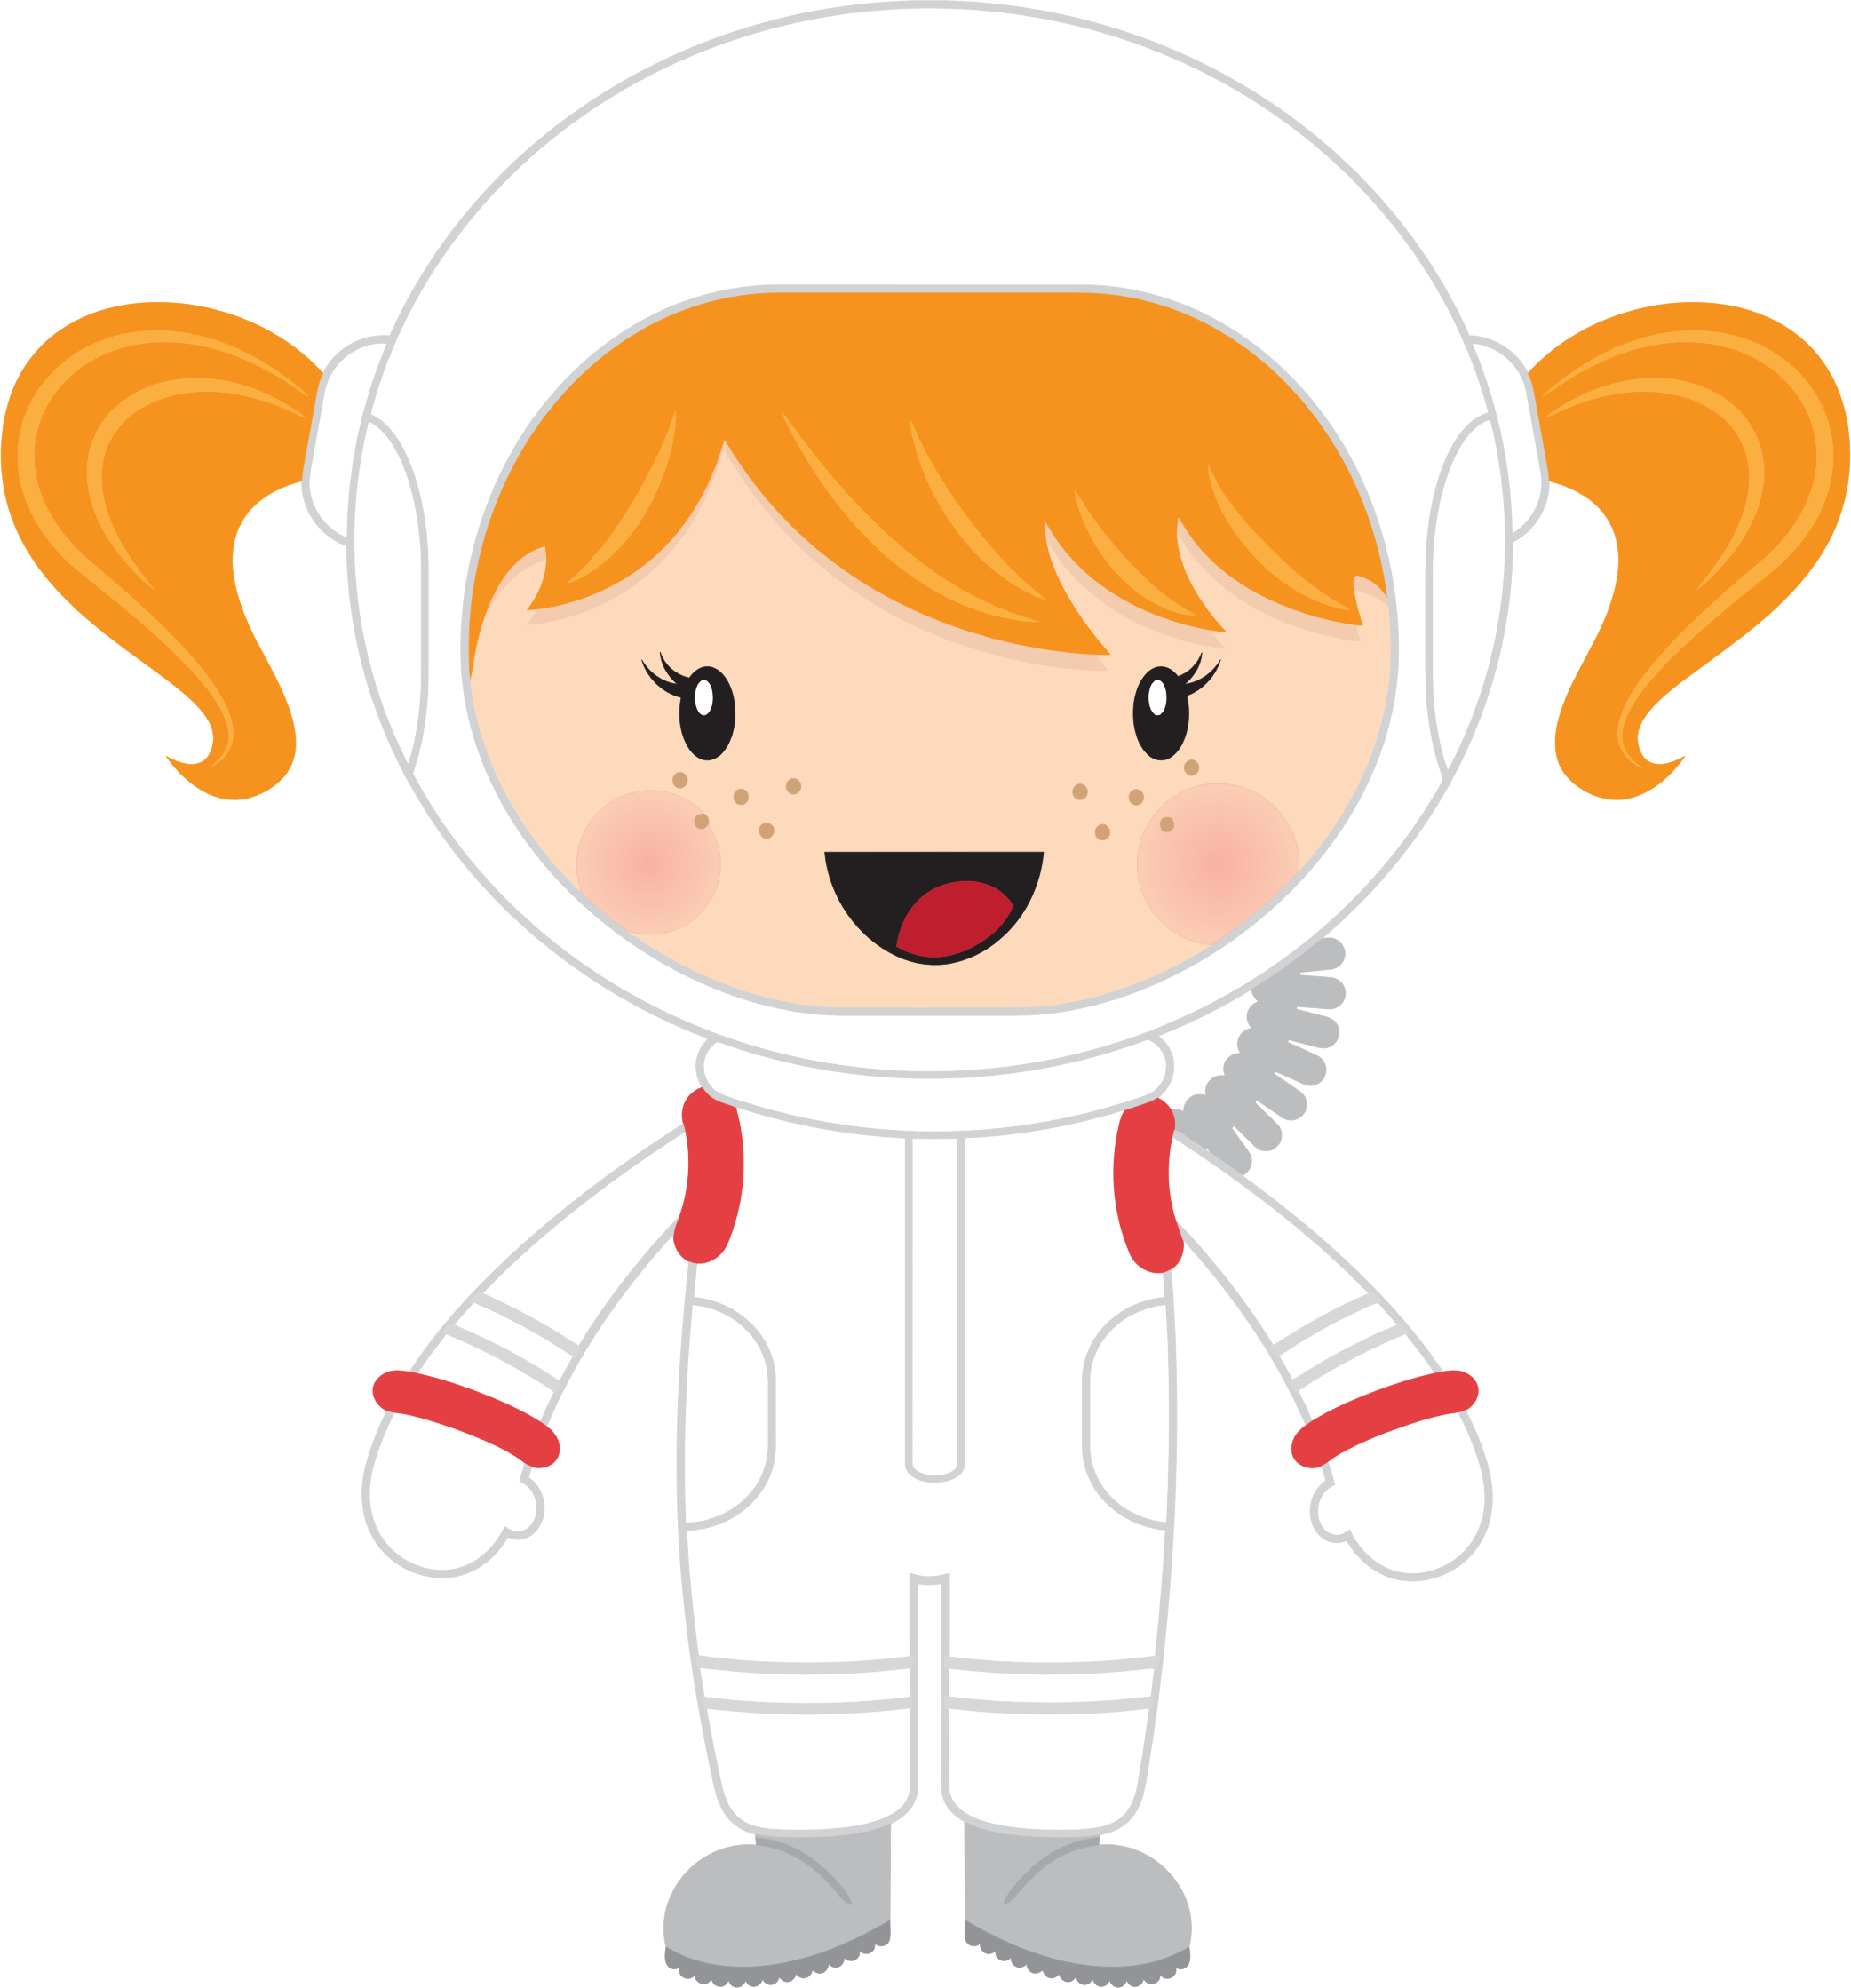 Astronaut clipart png. Collection of high